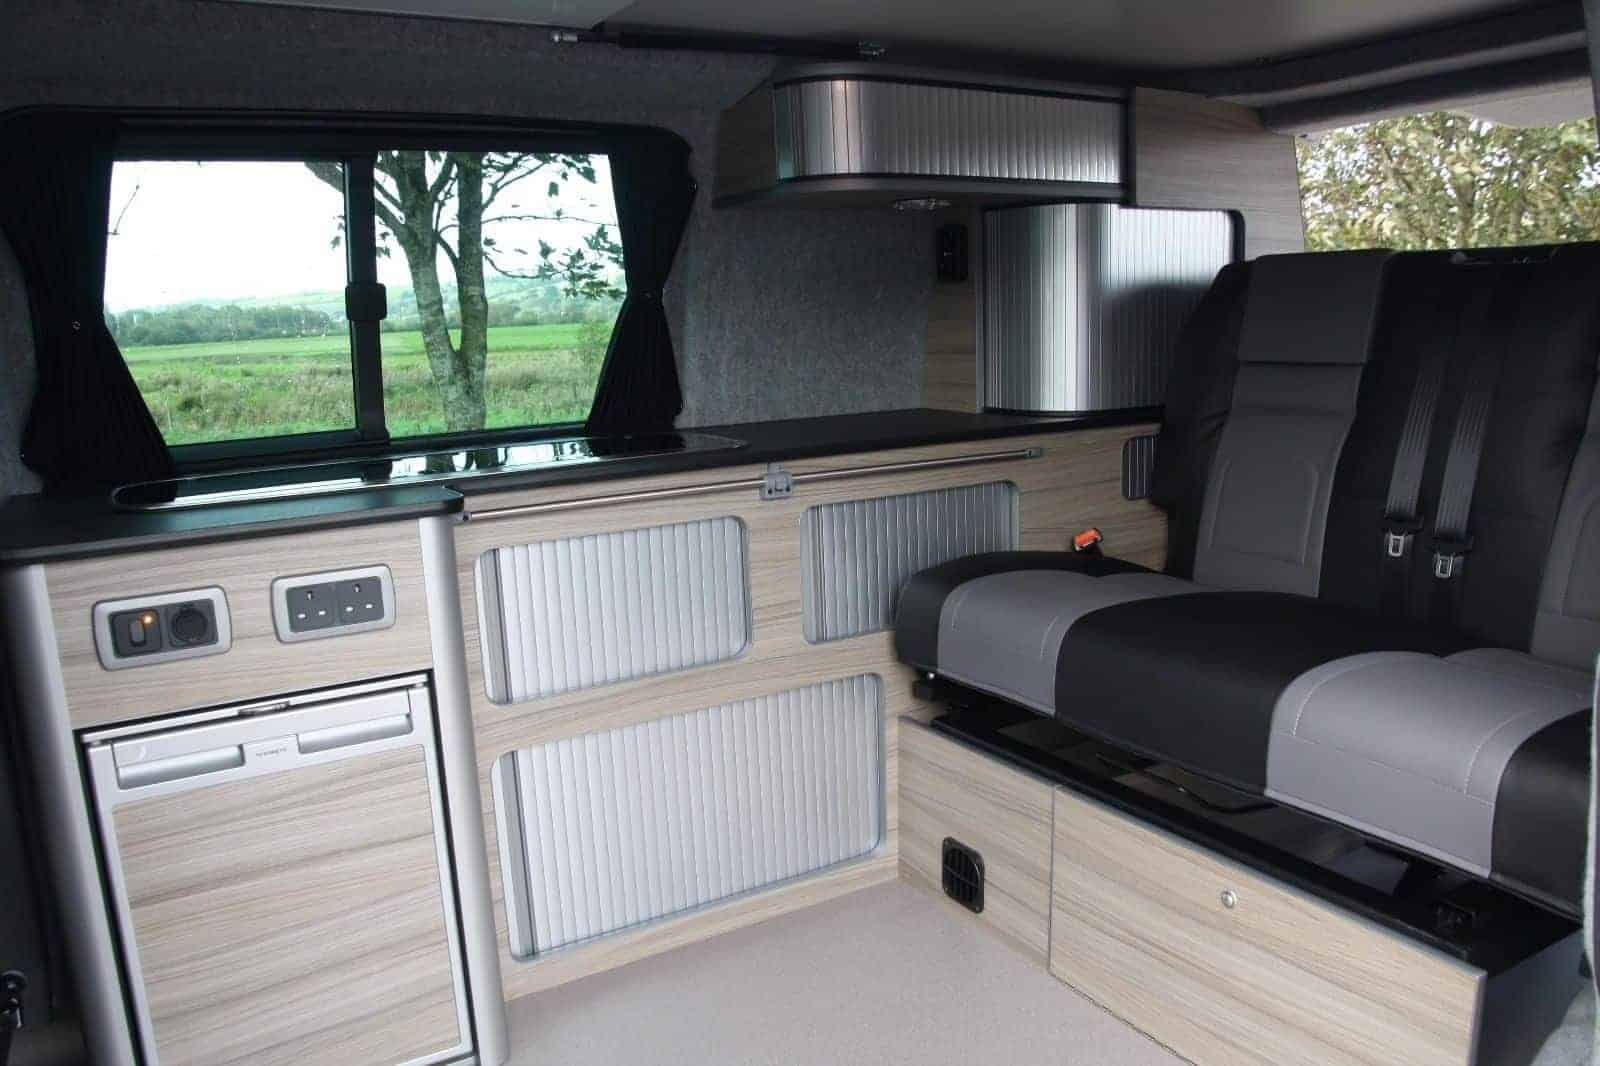 Renault Trafic Campervan Conversion Stripewood Tourer